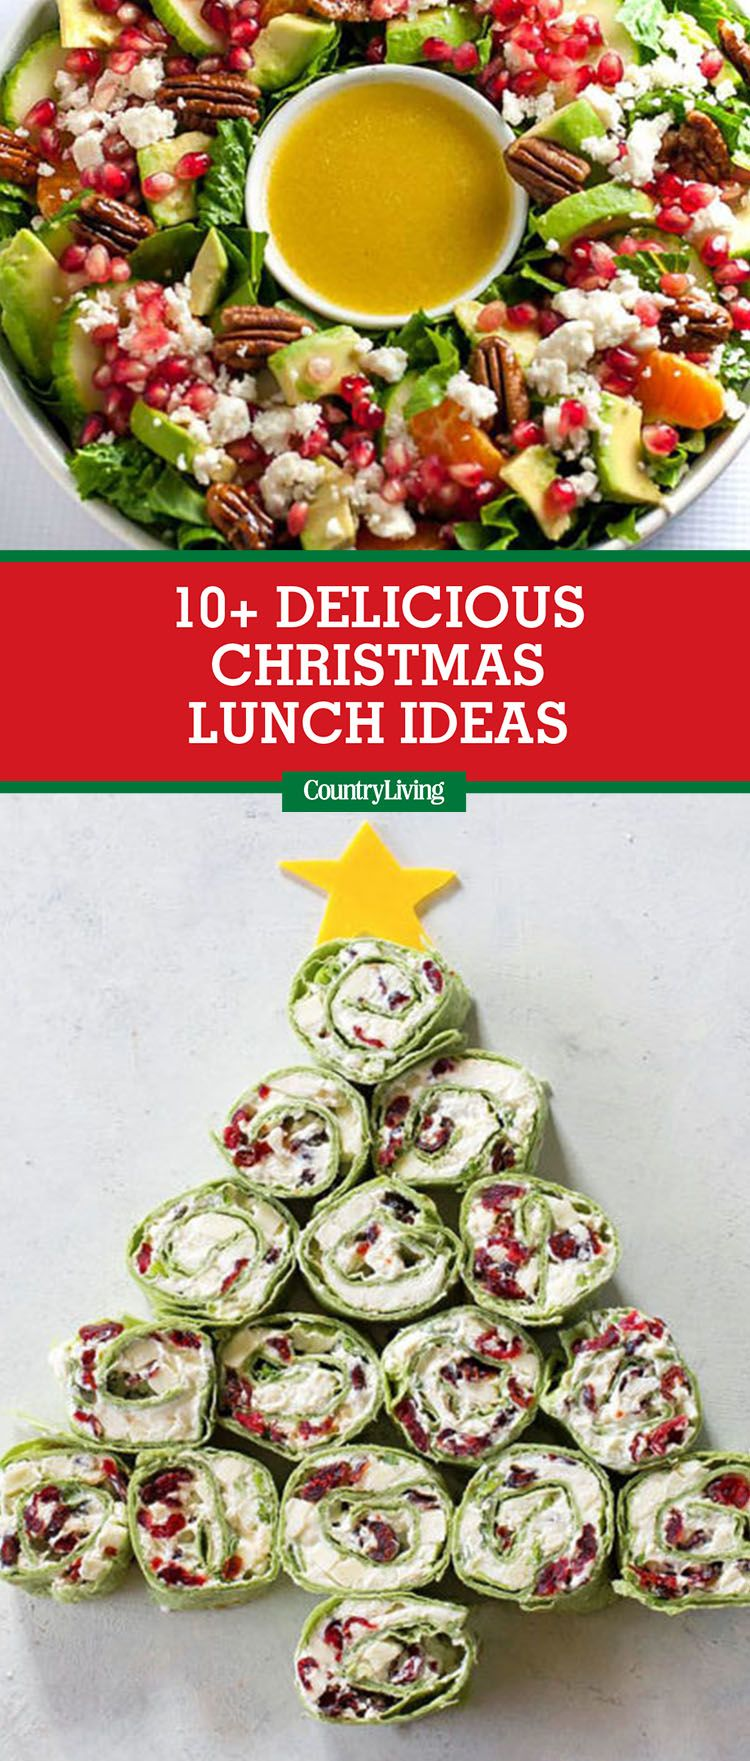 10 Easy Christmas Lunch Ideas